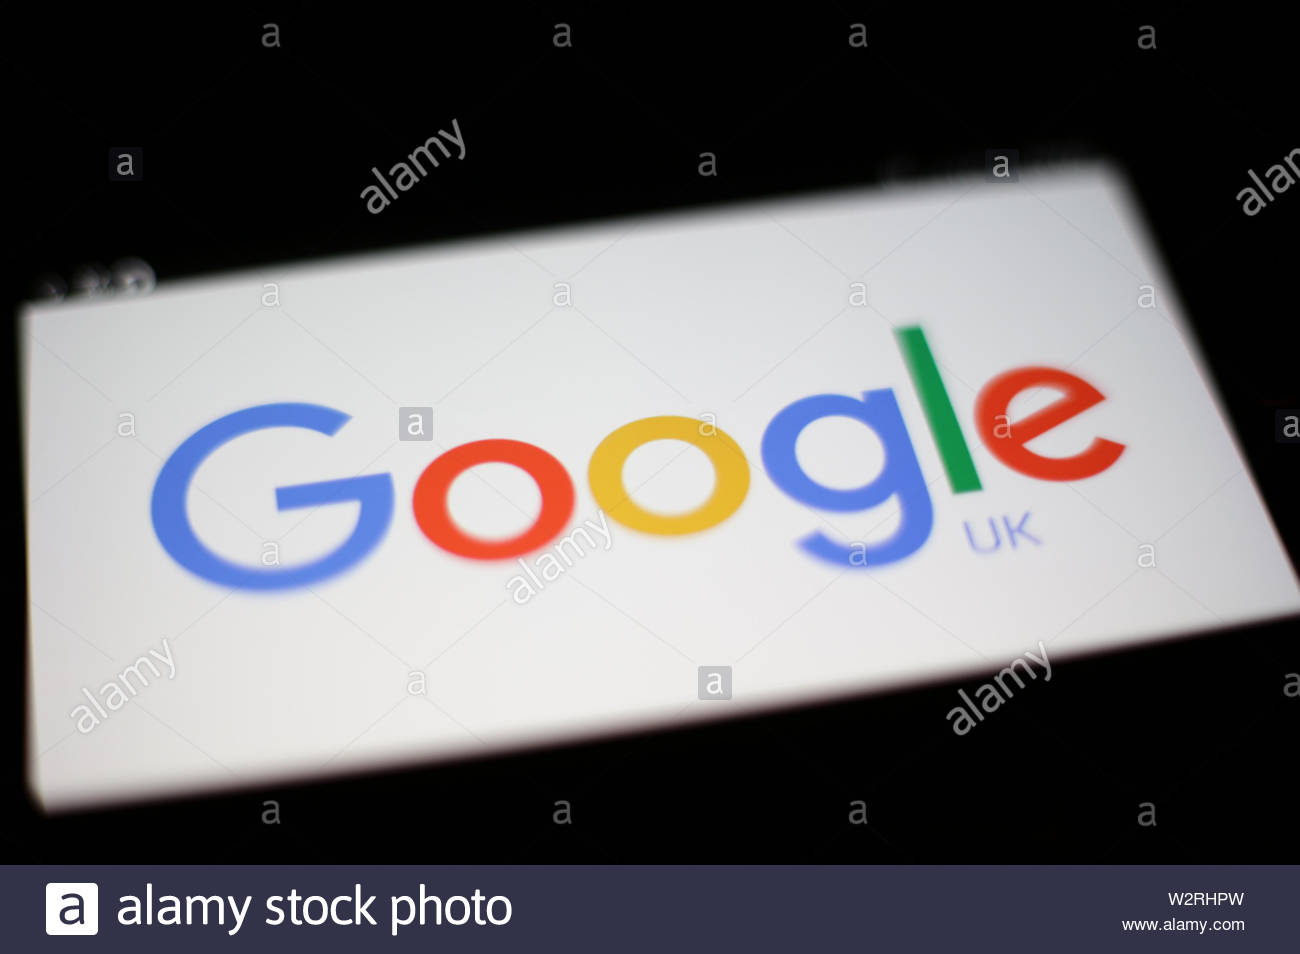 Google Translation Stock Photos & Google Translation Stock Images